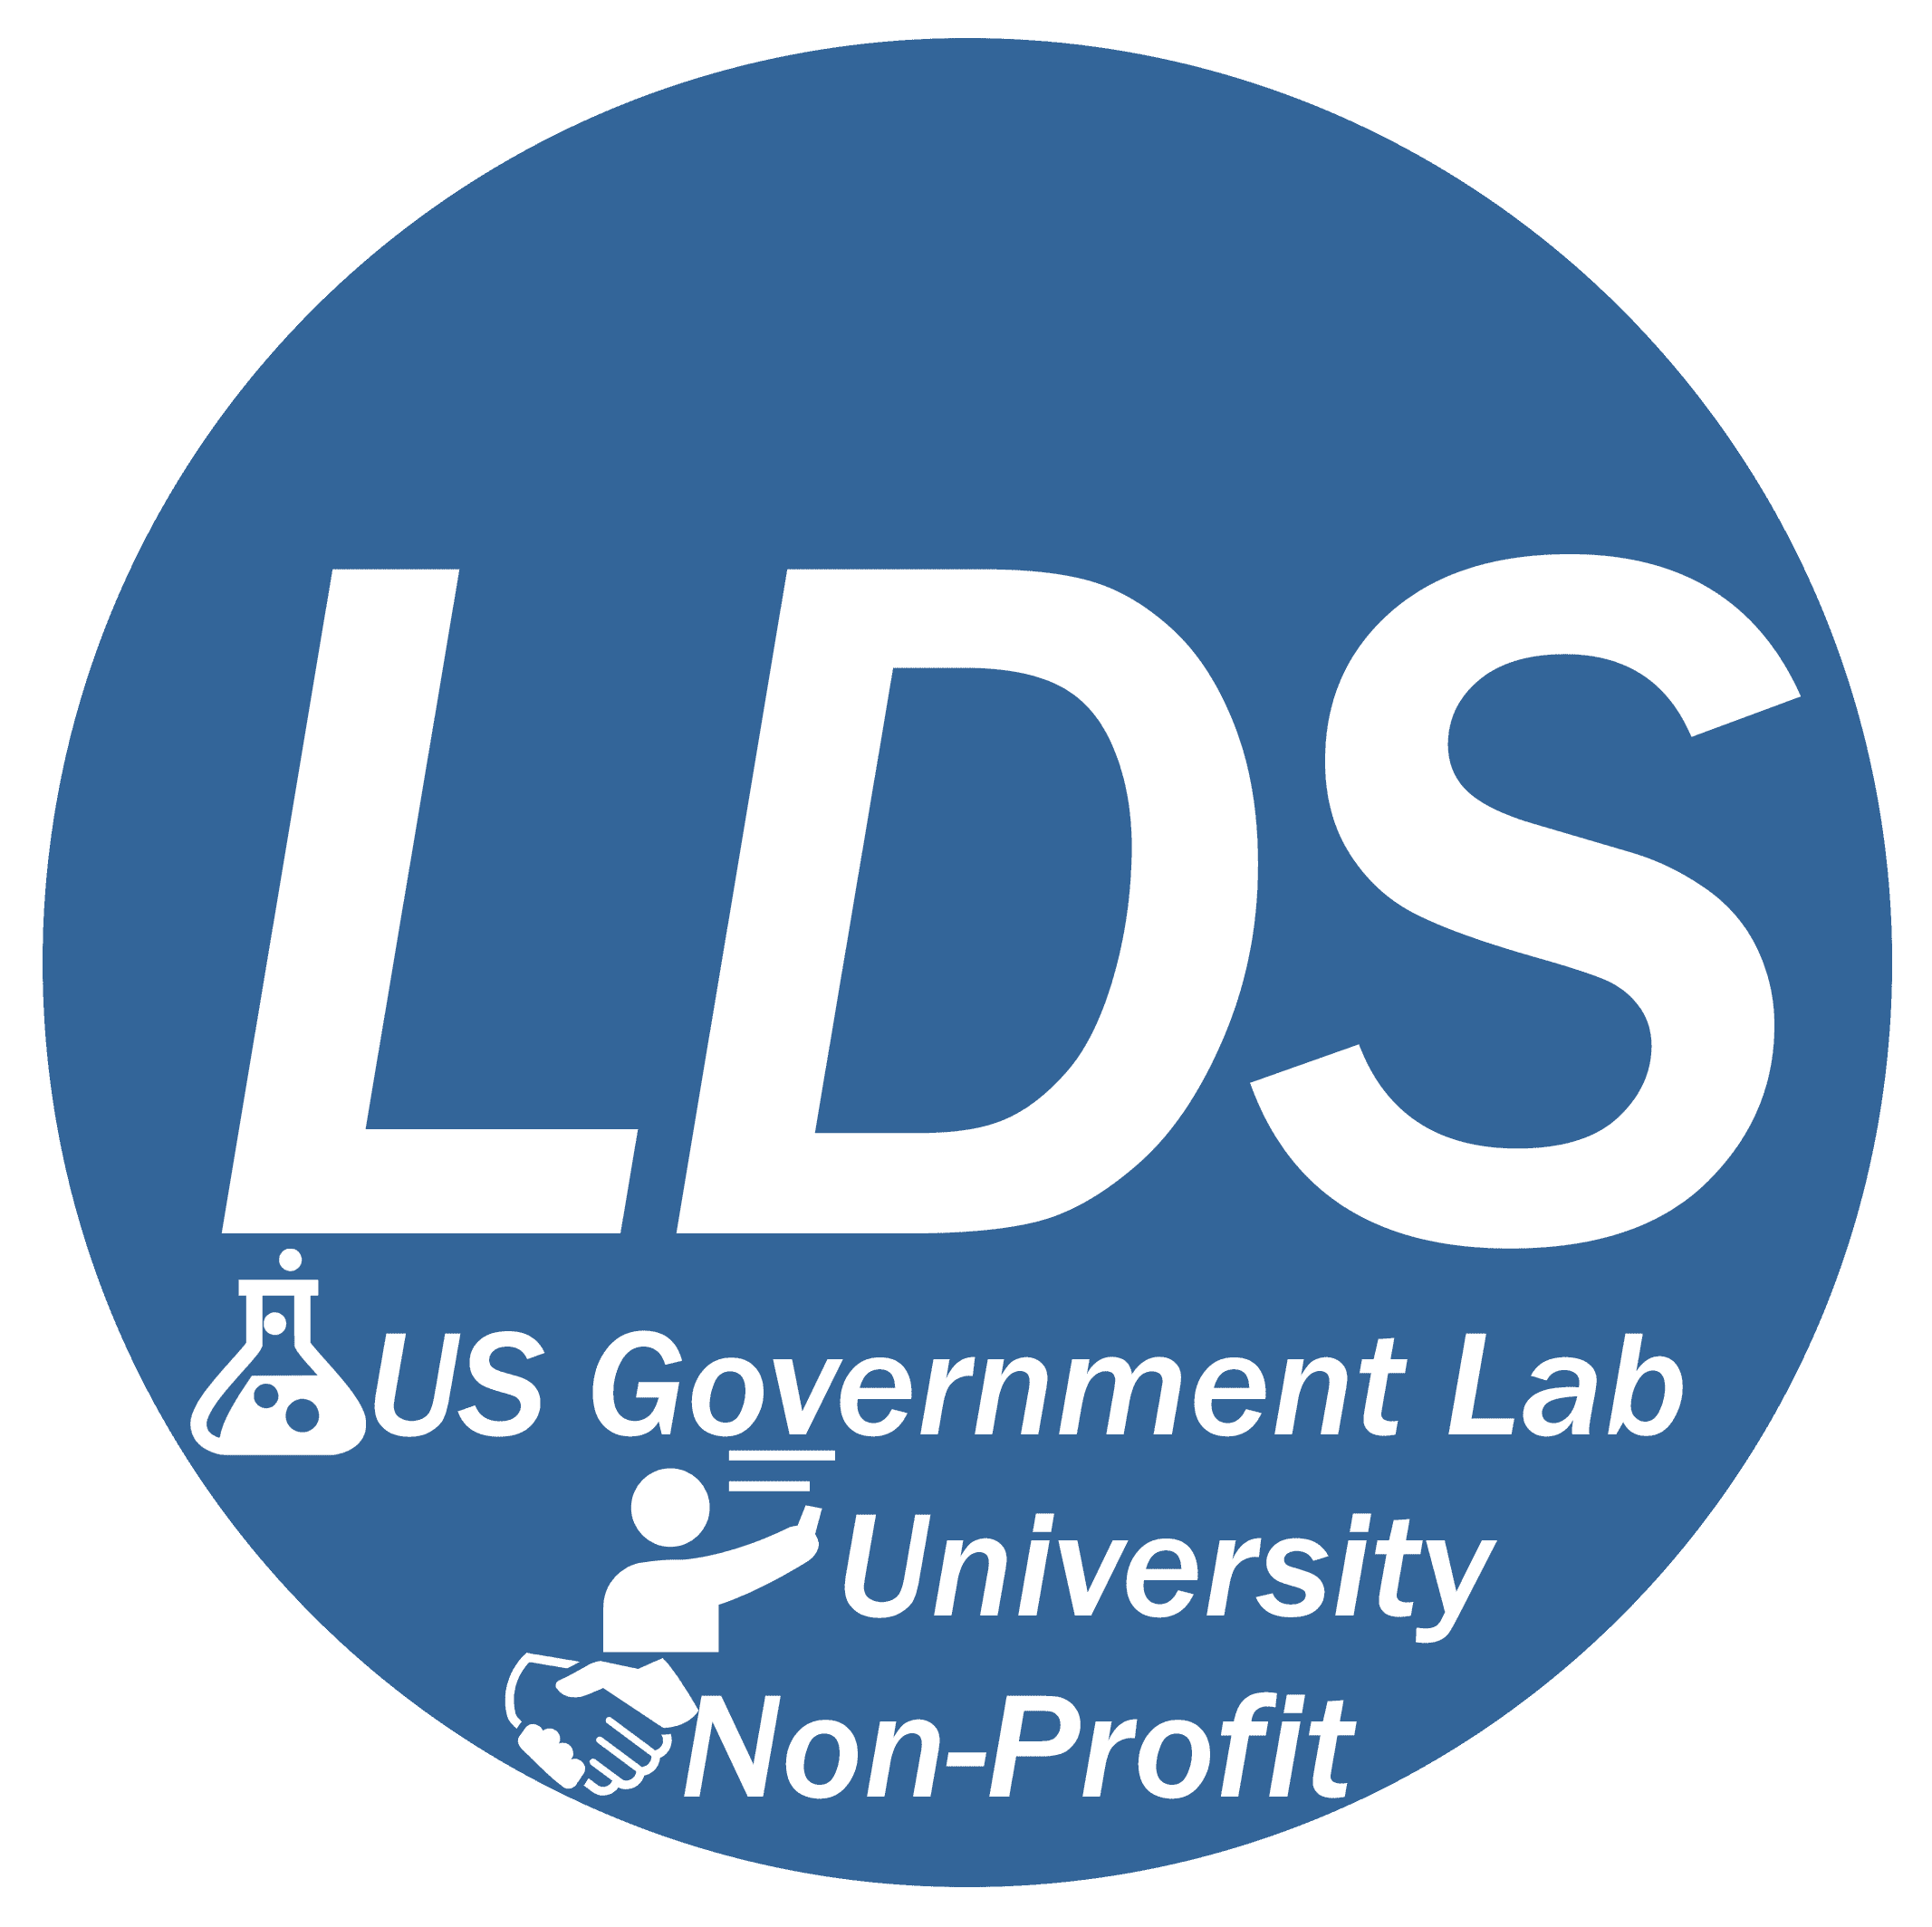 Go to the University, Non-Profit & Government Labs ONLY section on the LDS Vacuum Shopper